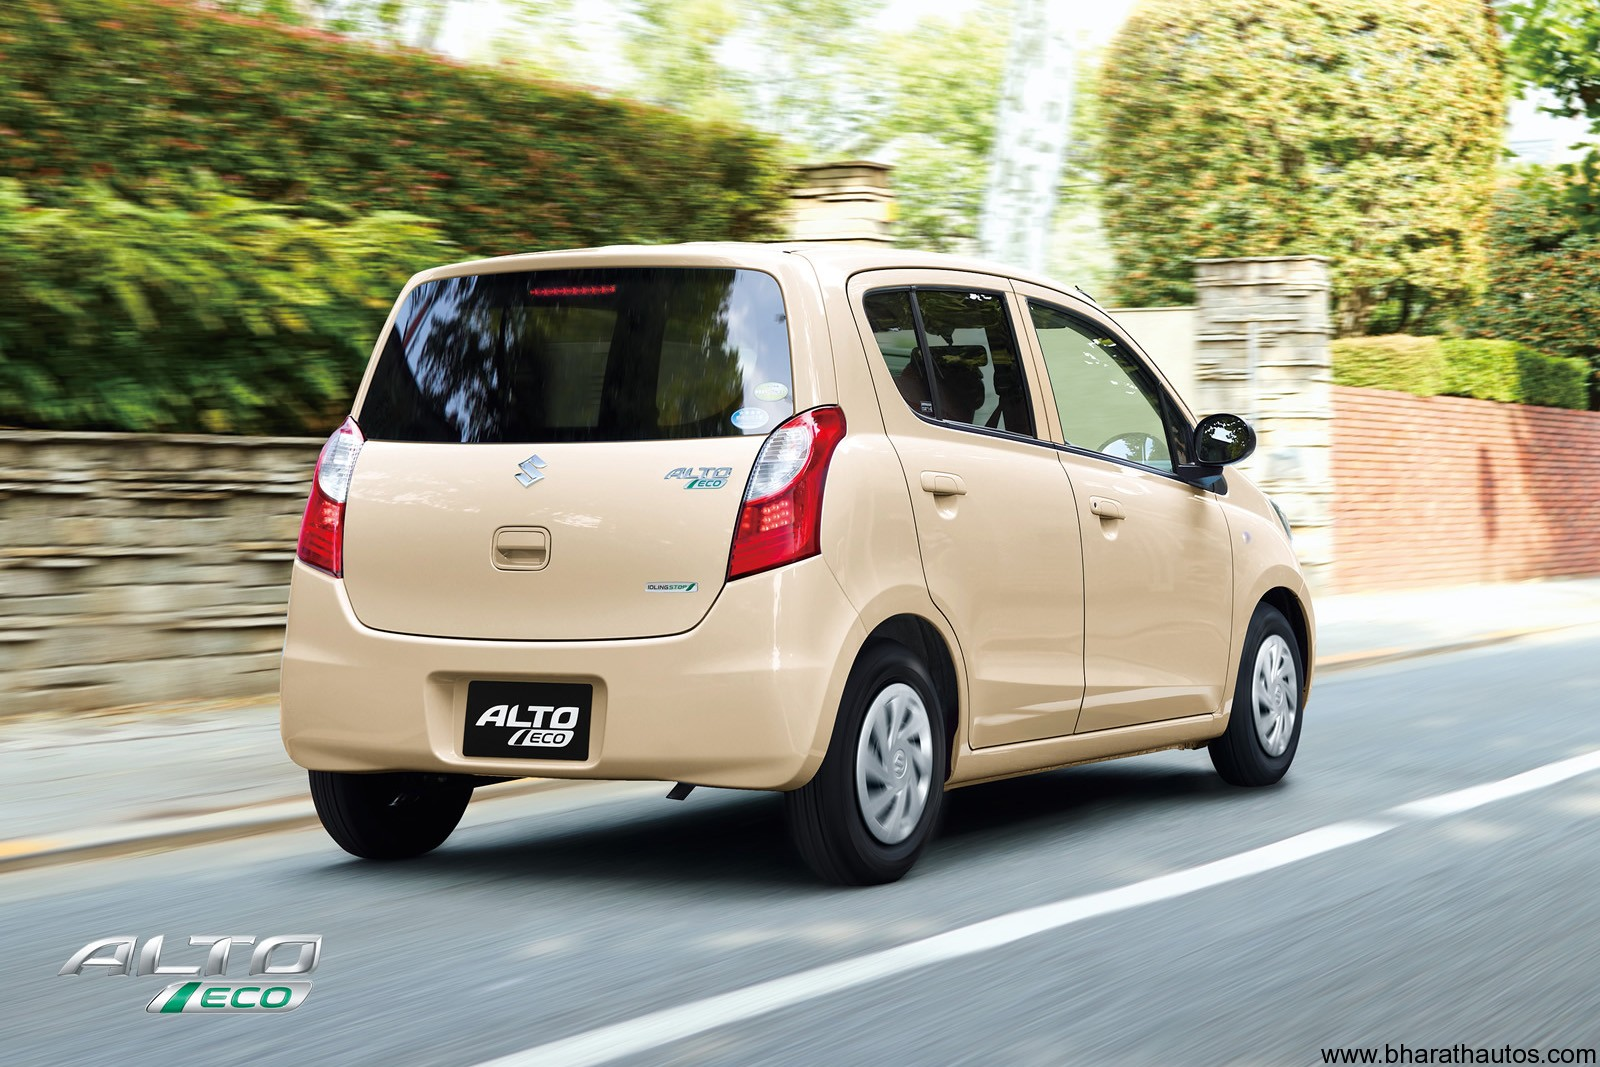 Japanese Suzuki Alto Eco 600cc Returns Upto 32kmpl